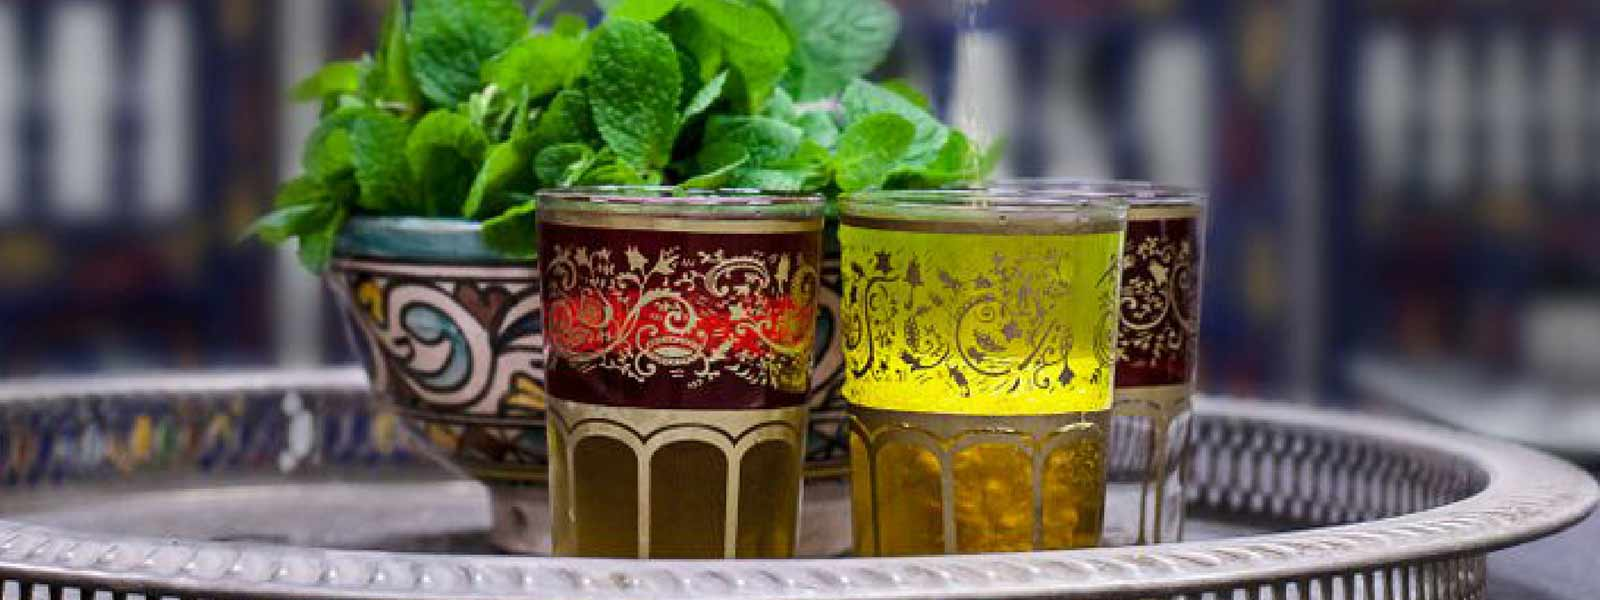 Moroccan Tea glasses glasswear